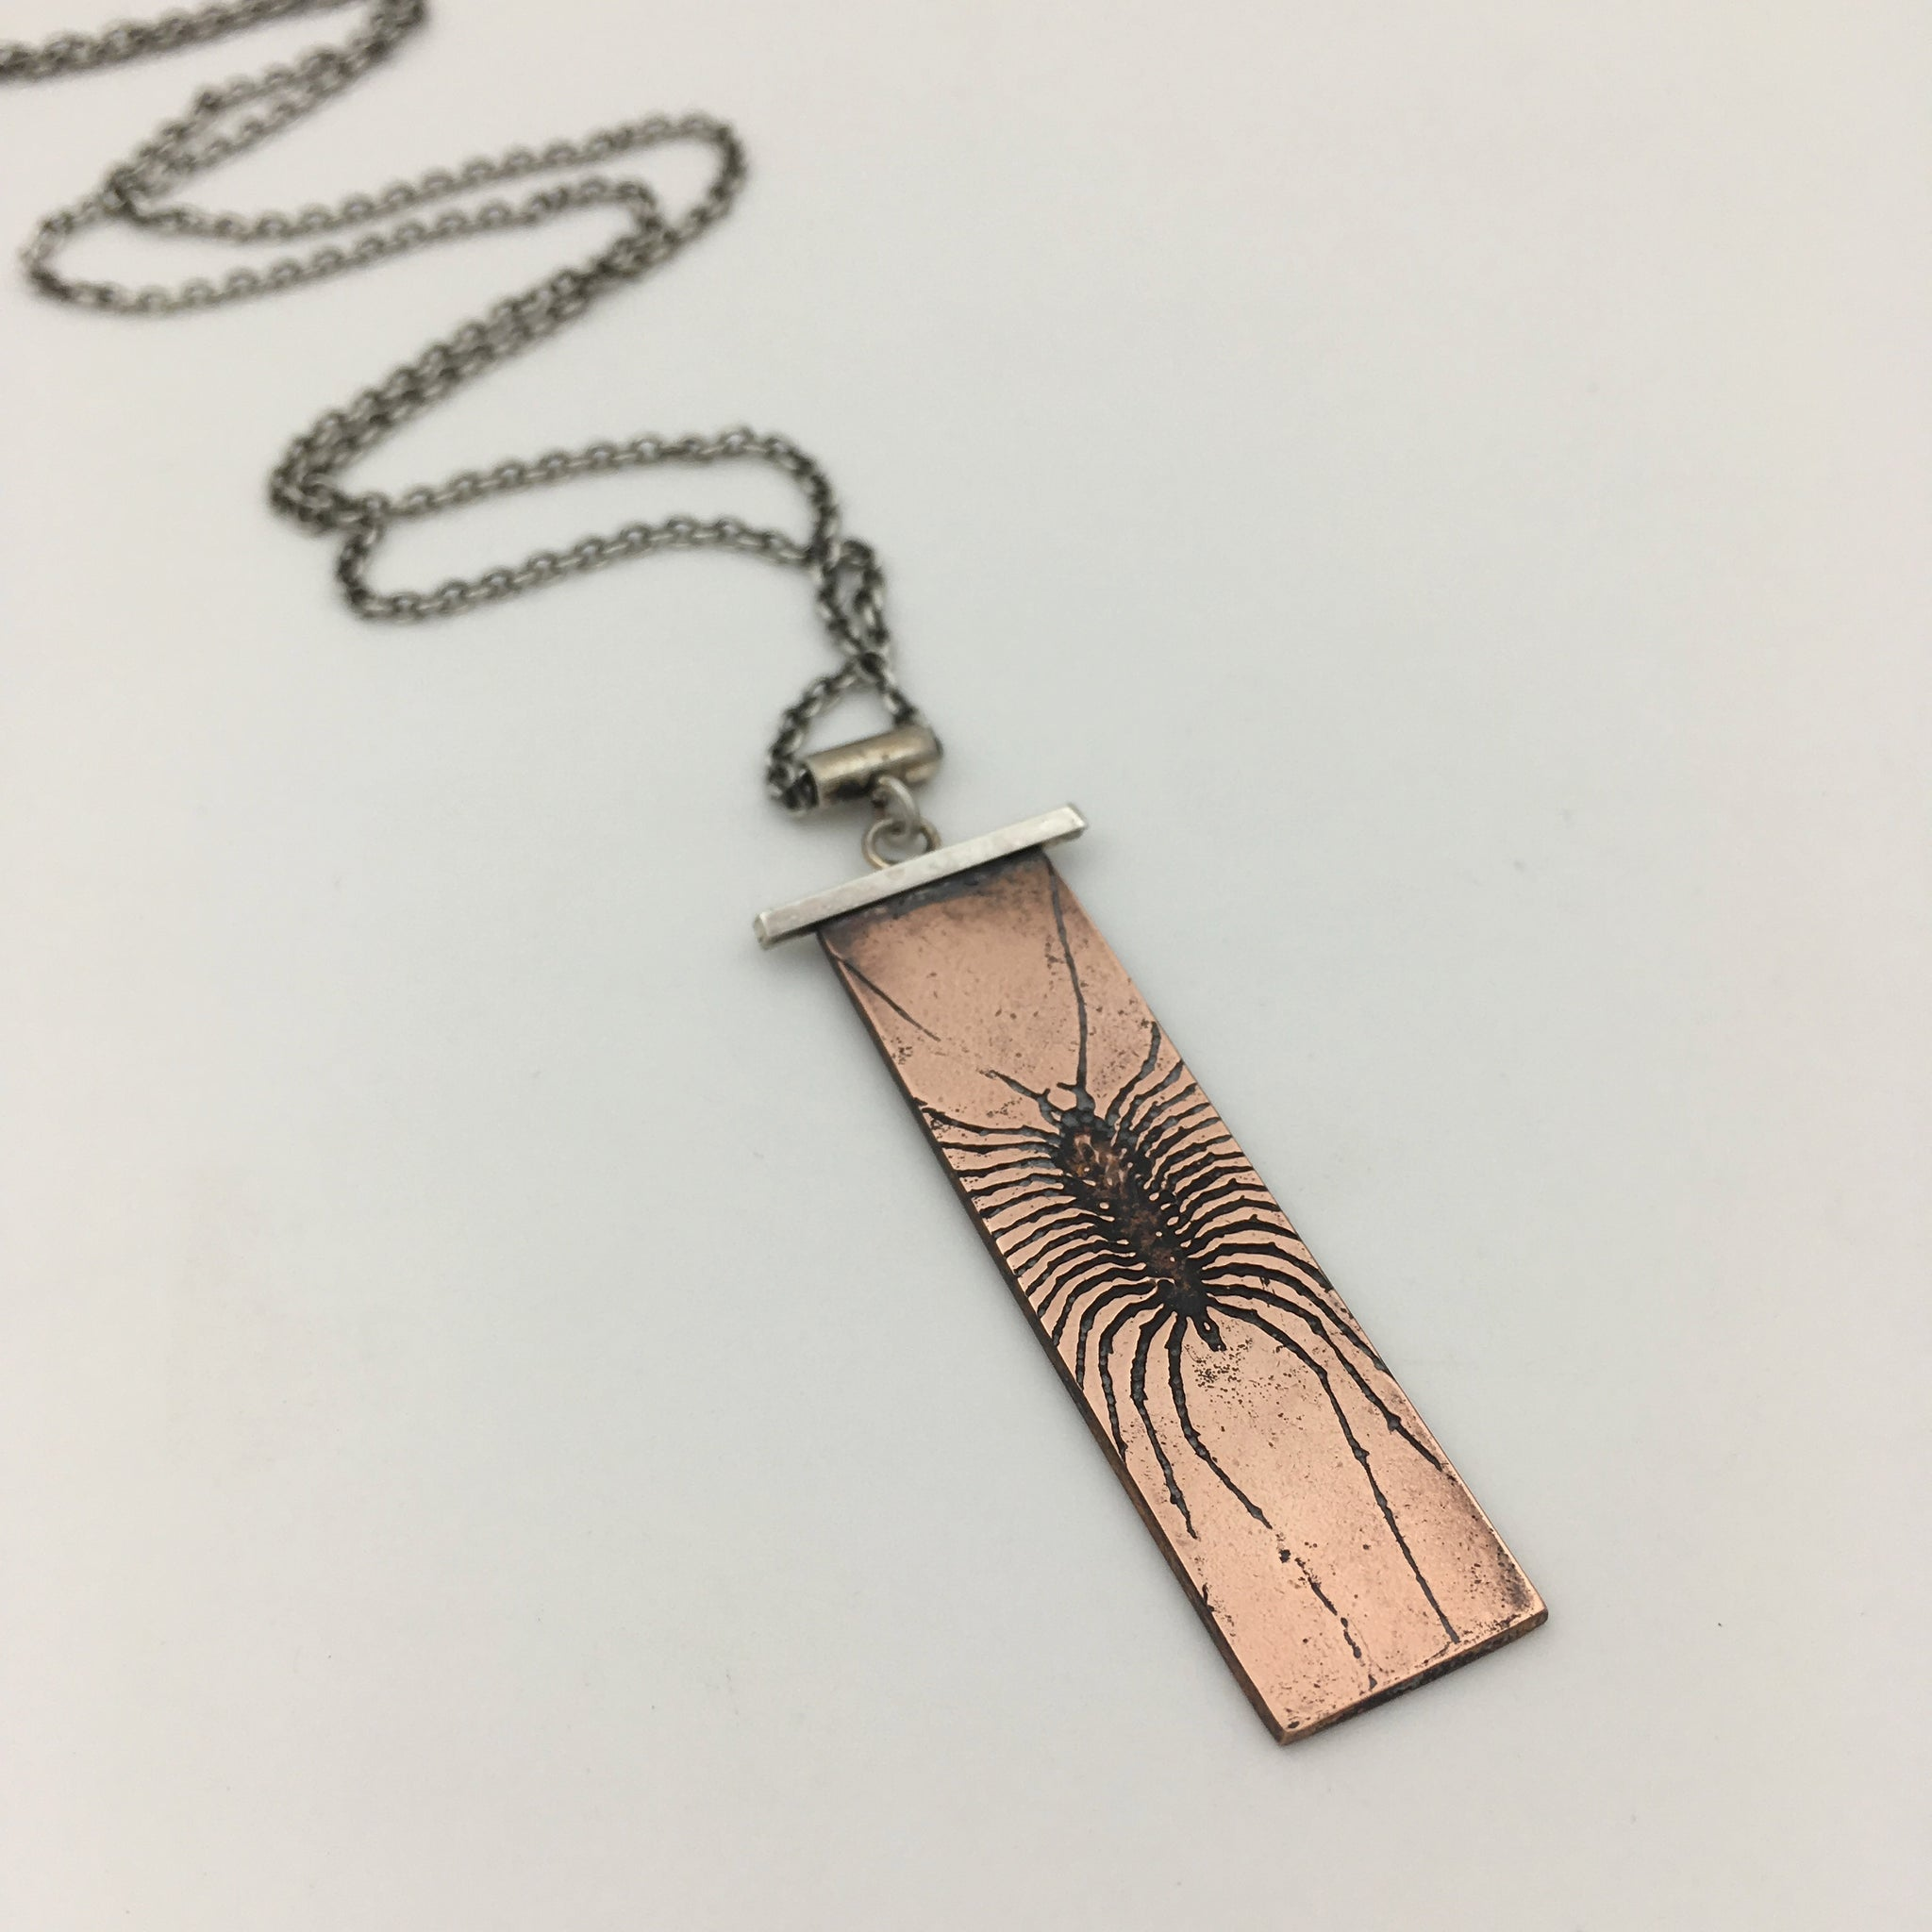 Handmade Centipede Necklace in Sterling Silver & Copper